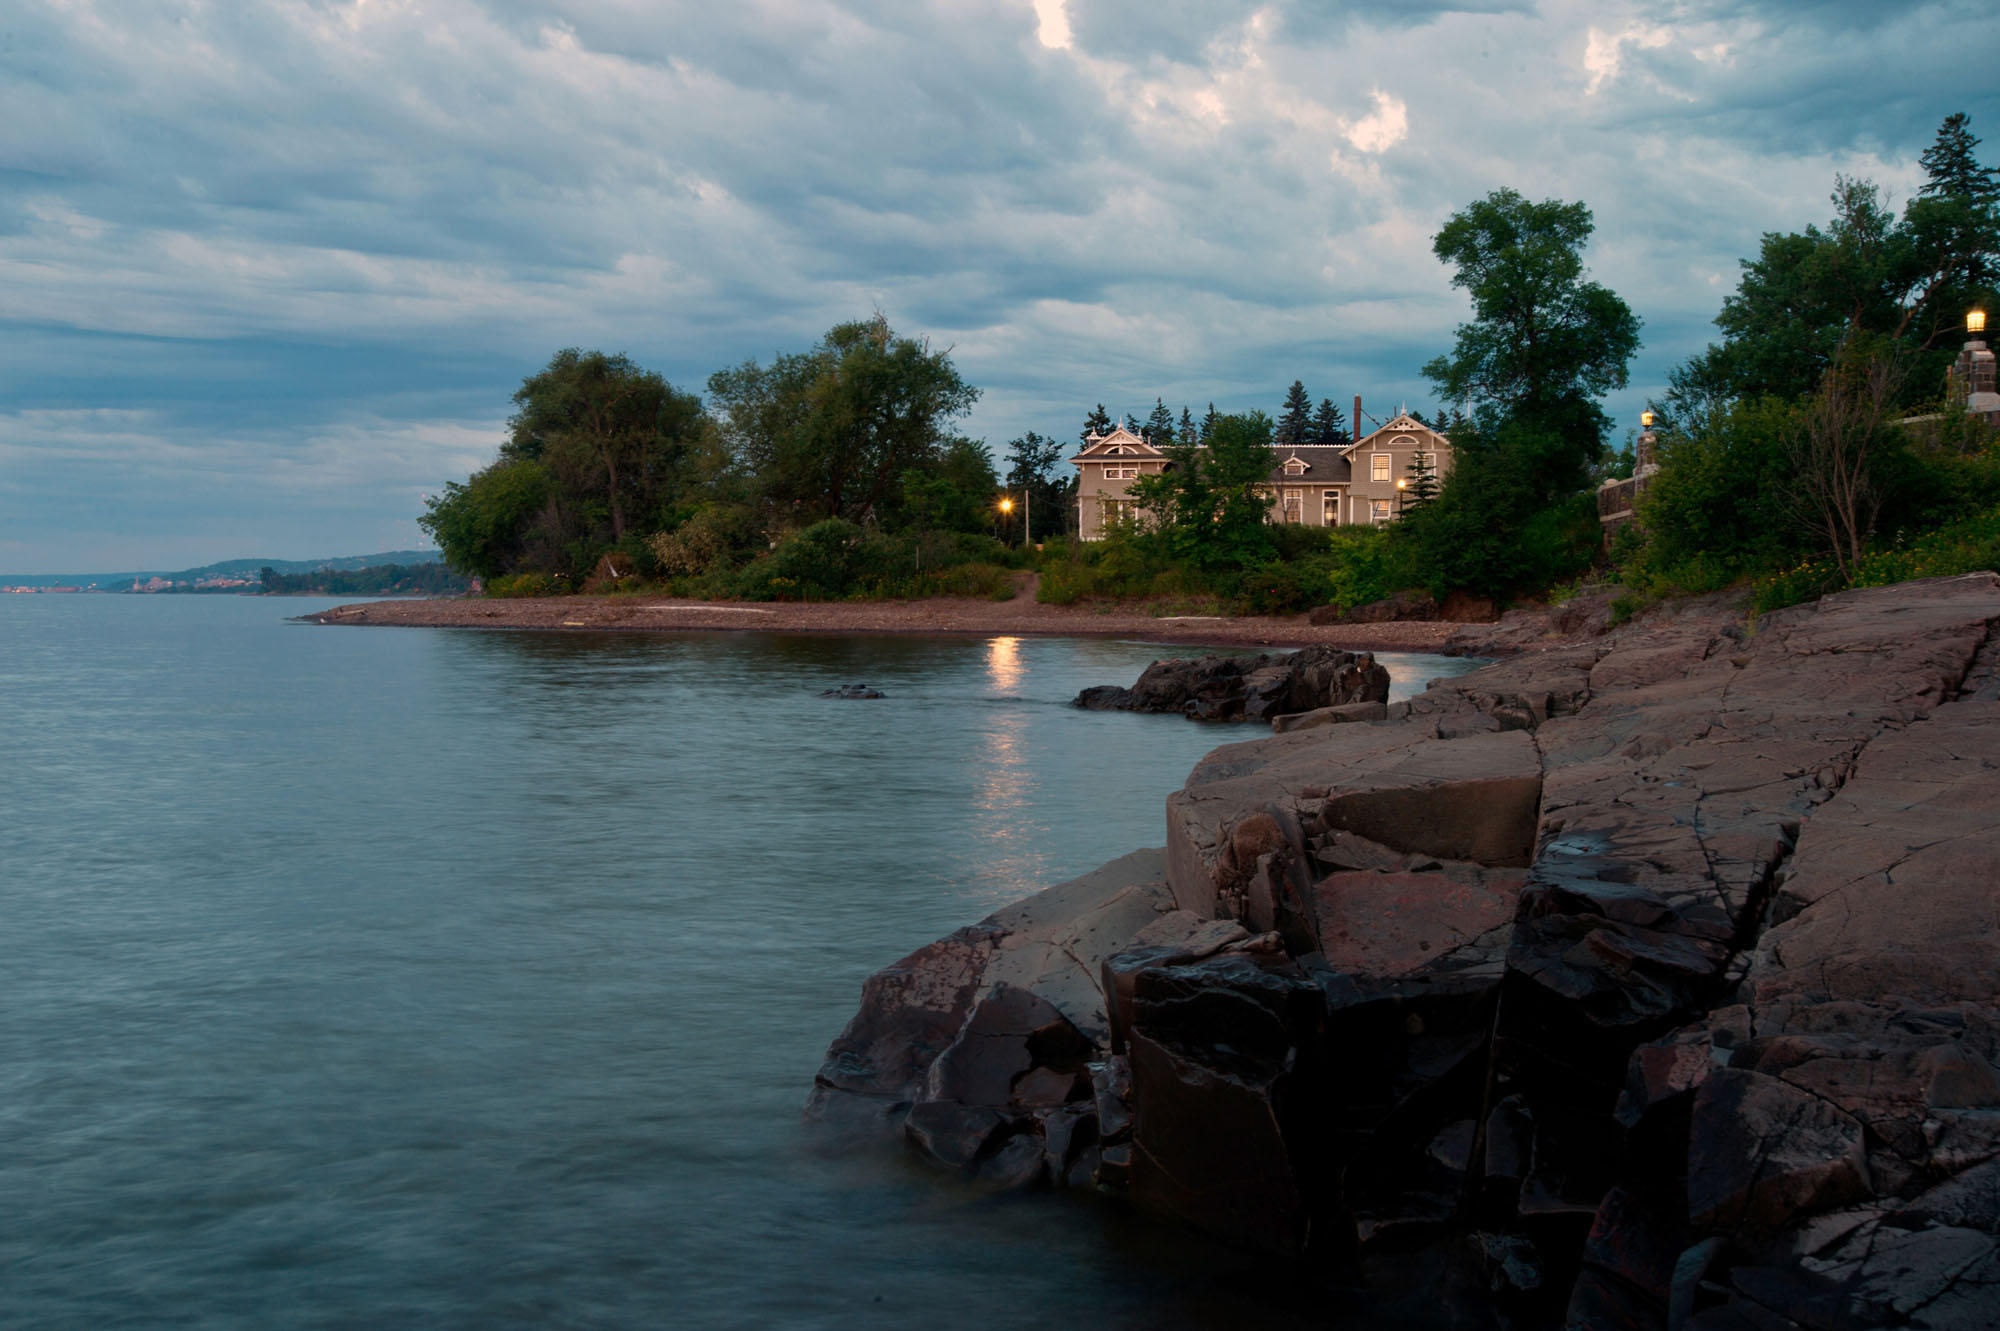 Modern image of Limnology building from the shoreline